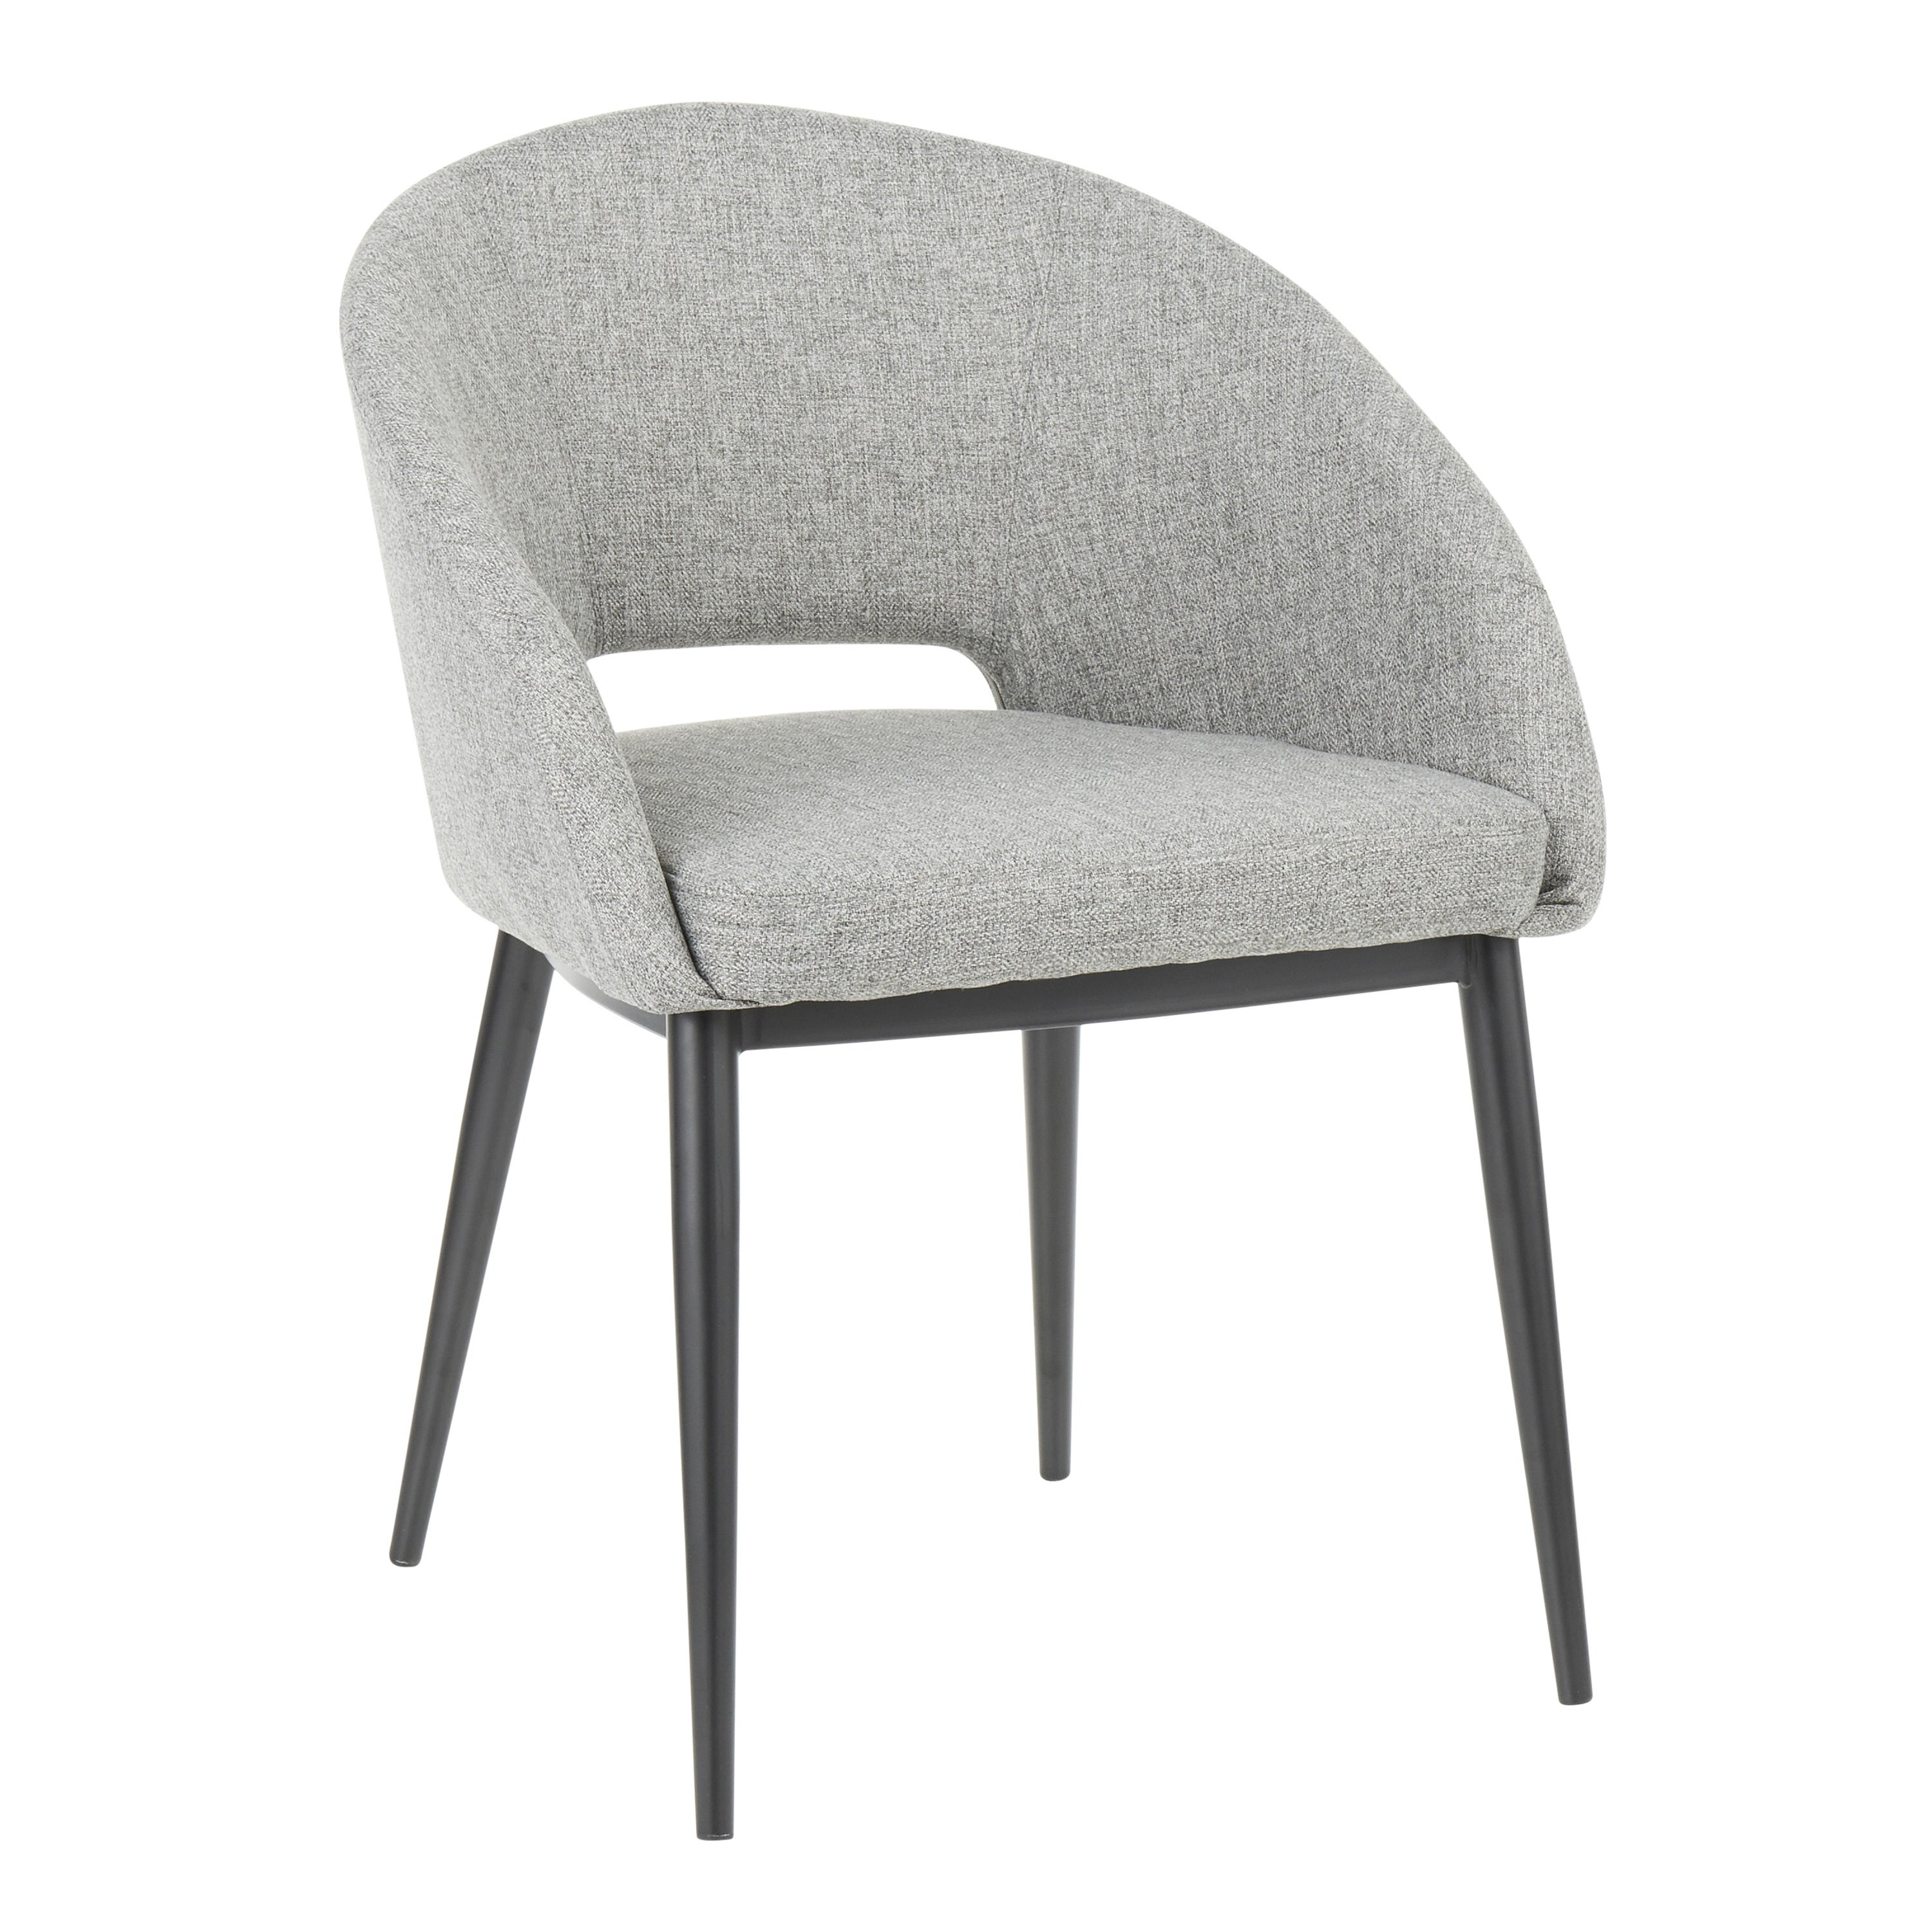 Carson Carrington Cullaville Upholstered Dining Chair On Sale Overstock 27555241